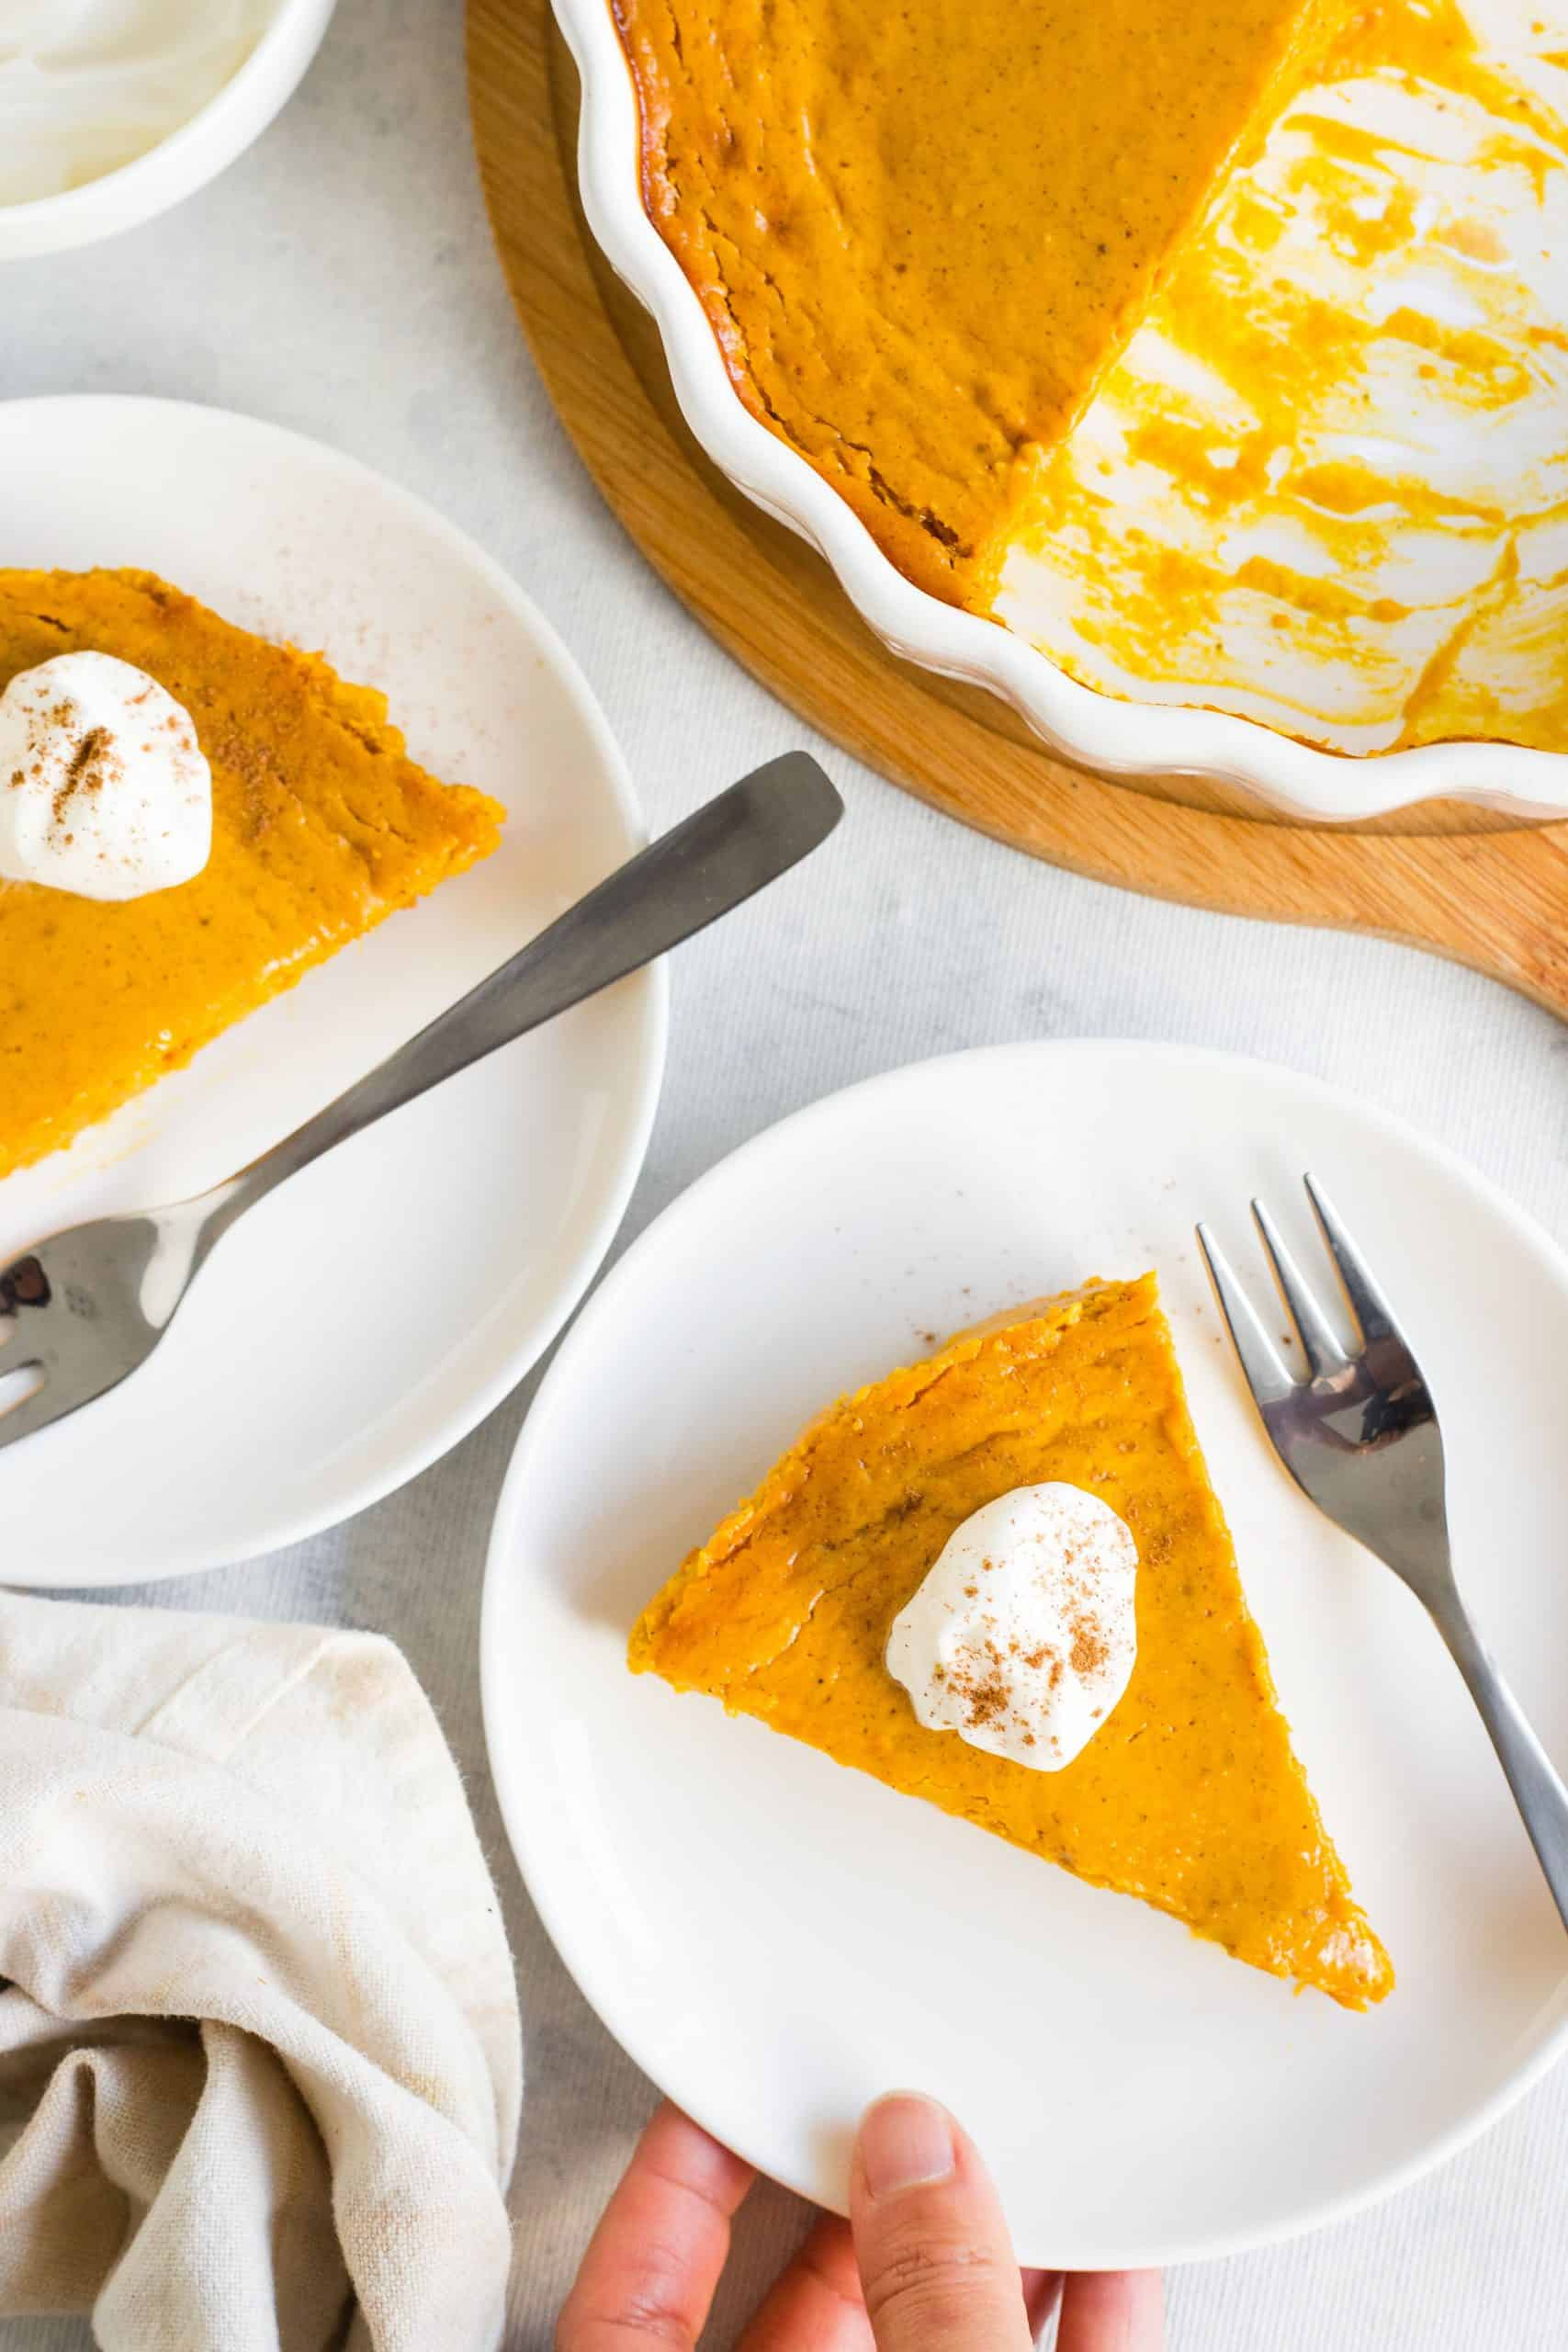 Plates of sliced pumpkin pie on a table.